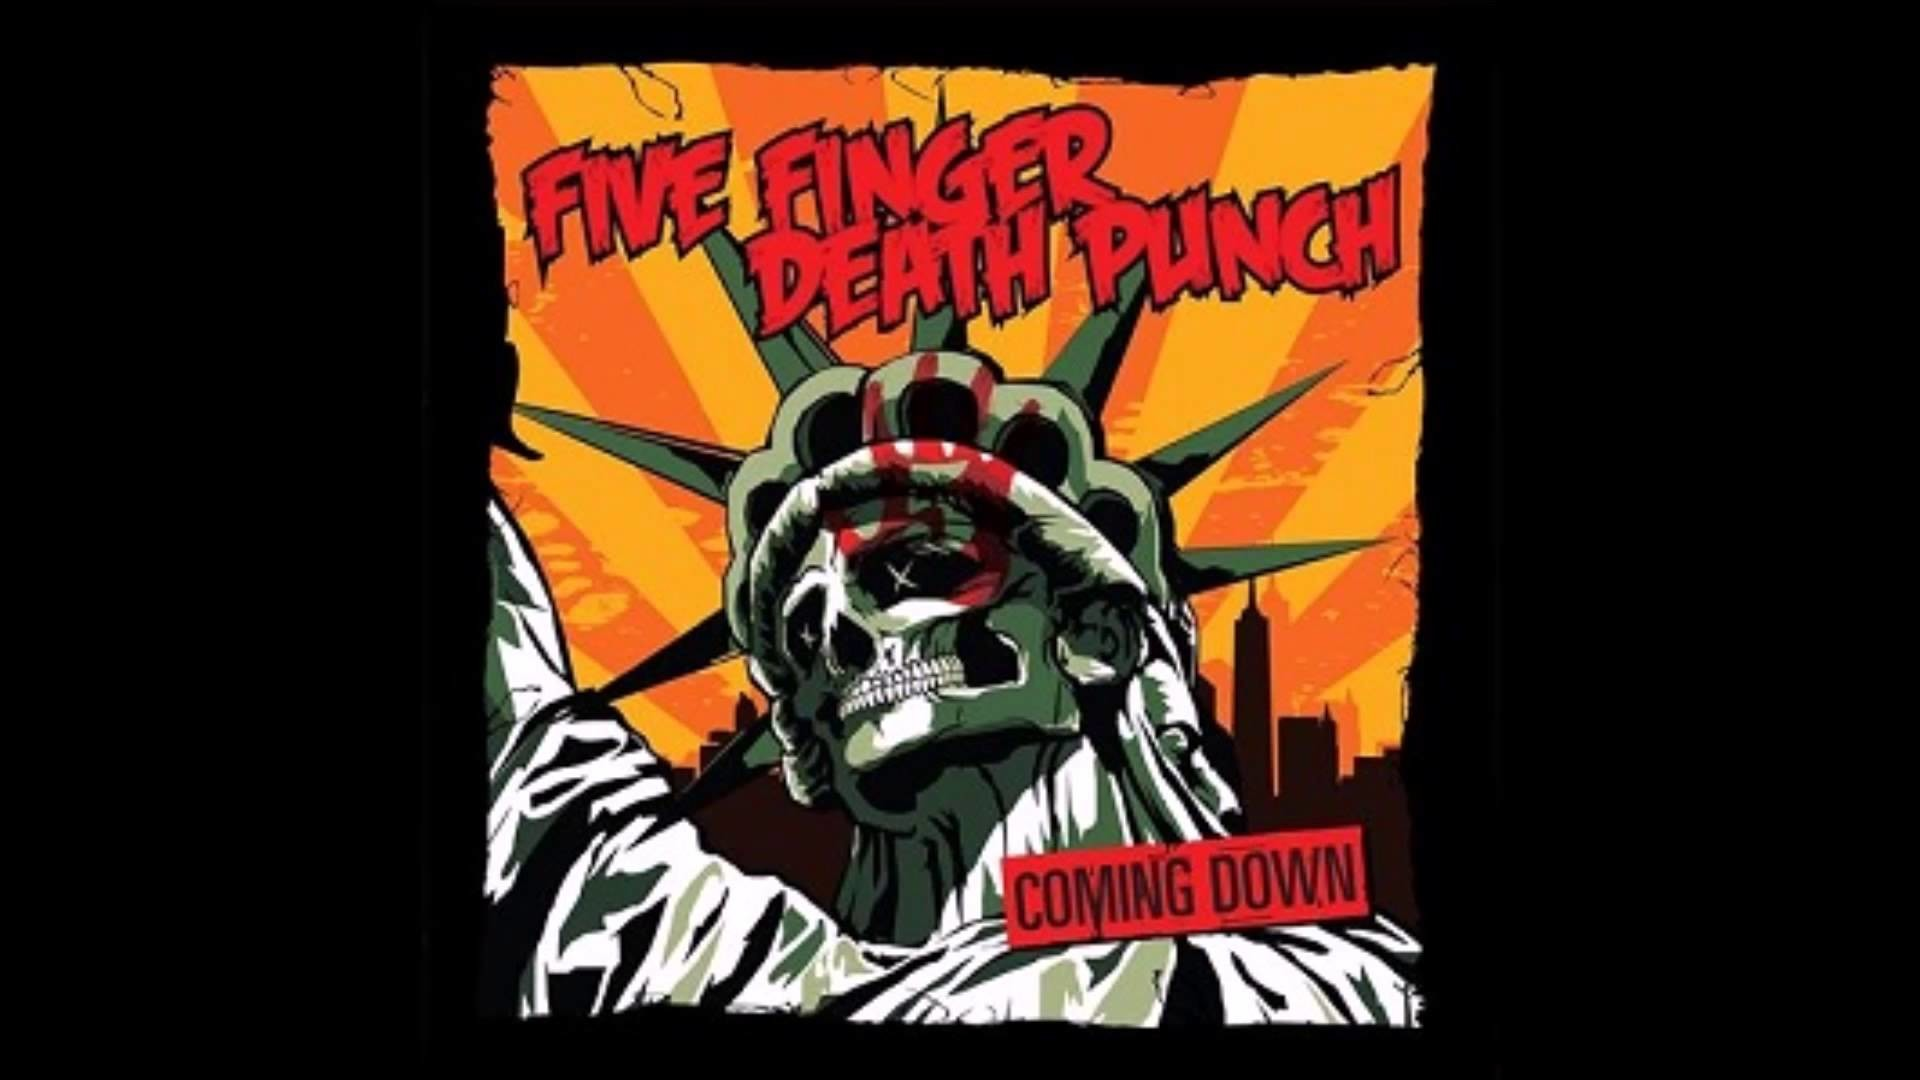 1920x1080 Coming Down by Five Finger Death Punch (Cover)